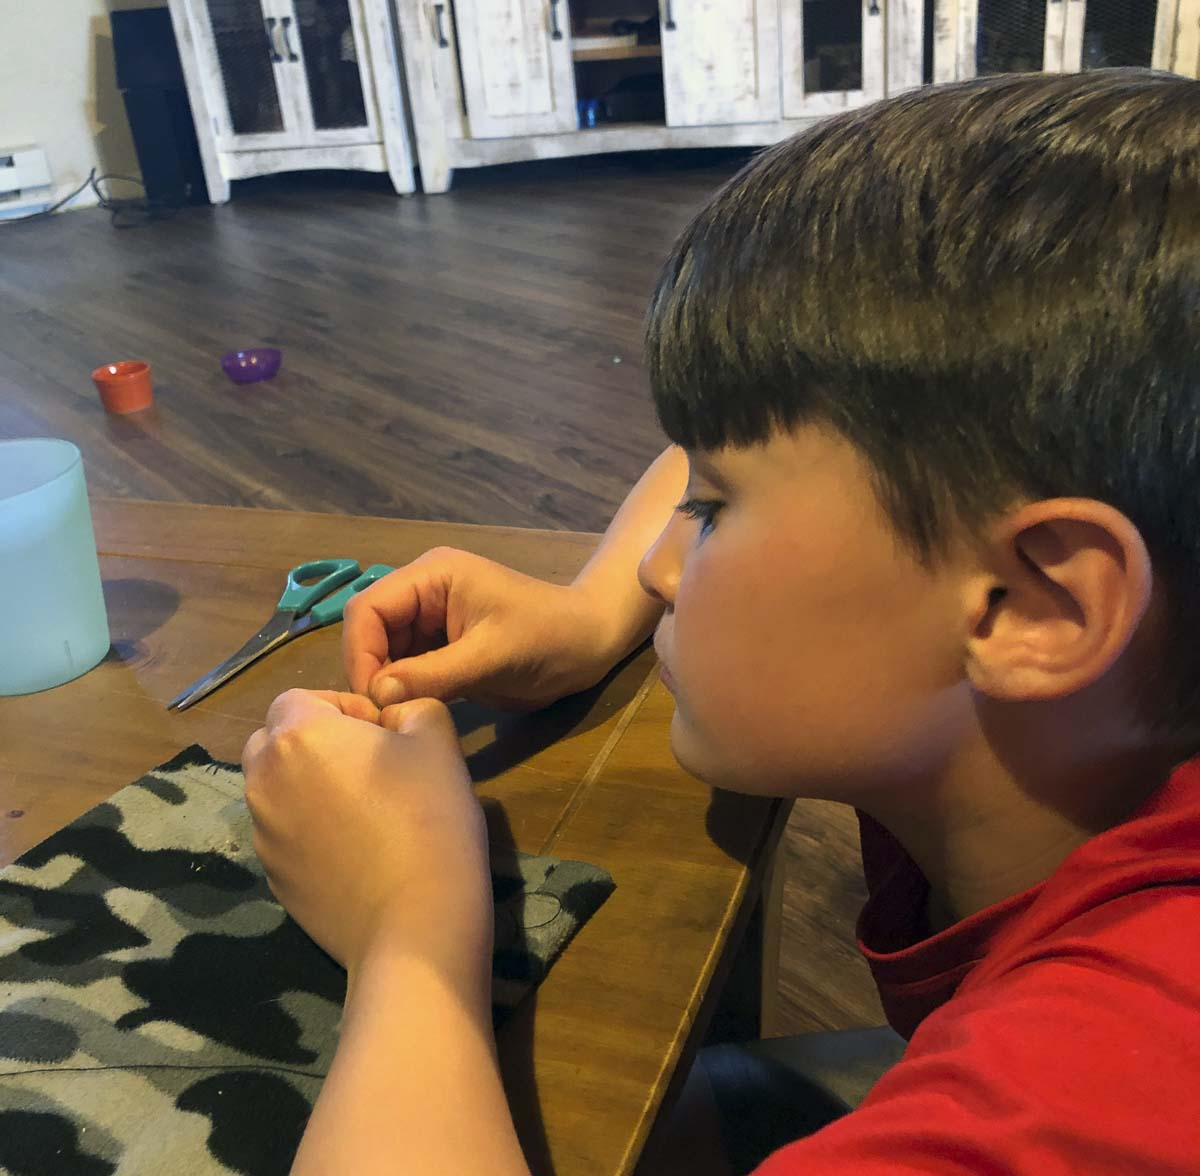 Logan Gnade, a 4th grader at North Fork Elementary School, used math and sewing to design patterns and sew face masks for friends and family. Photo courtesy of Woodland Public Schools